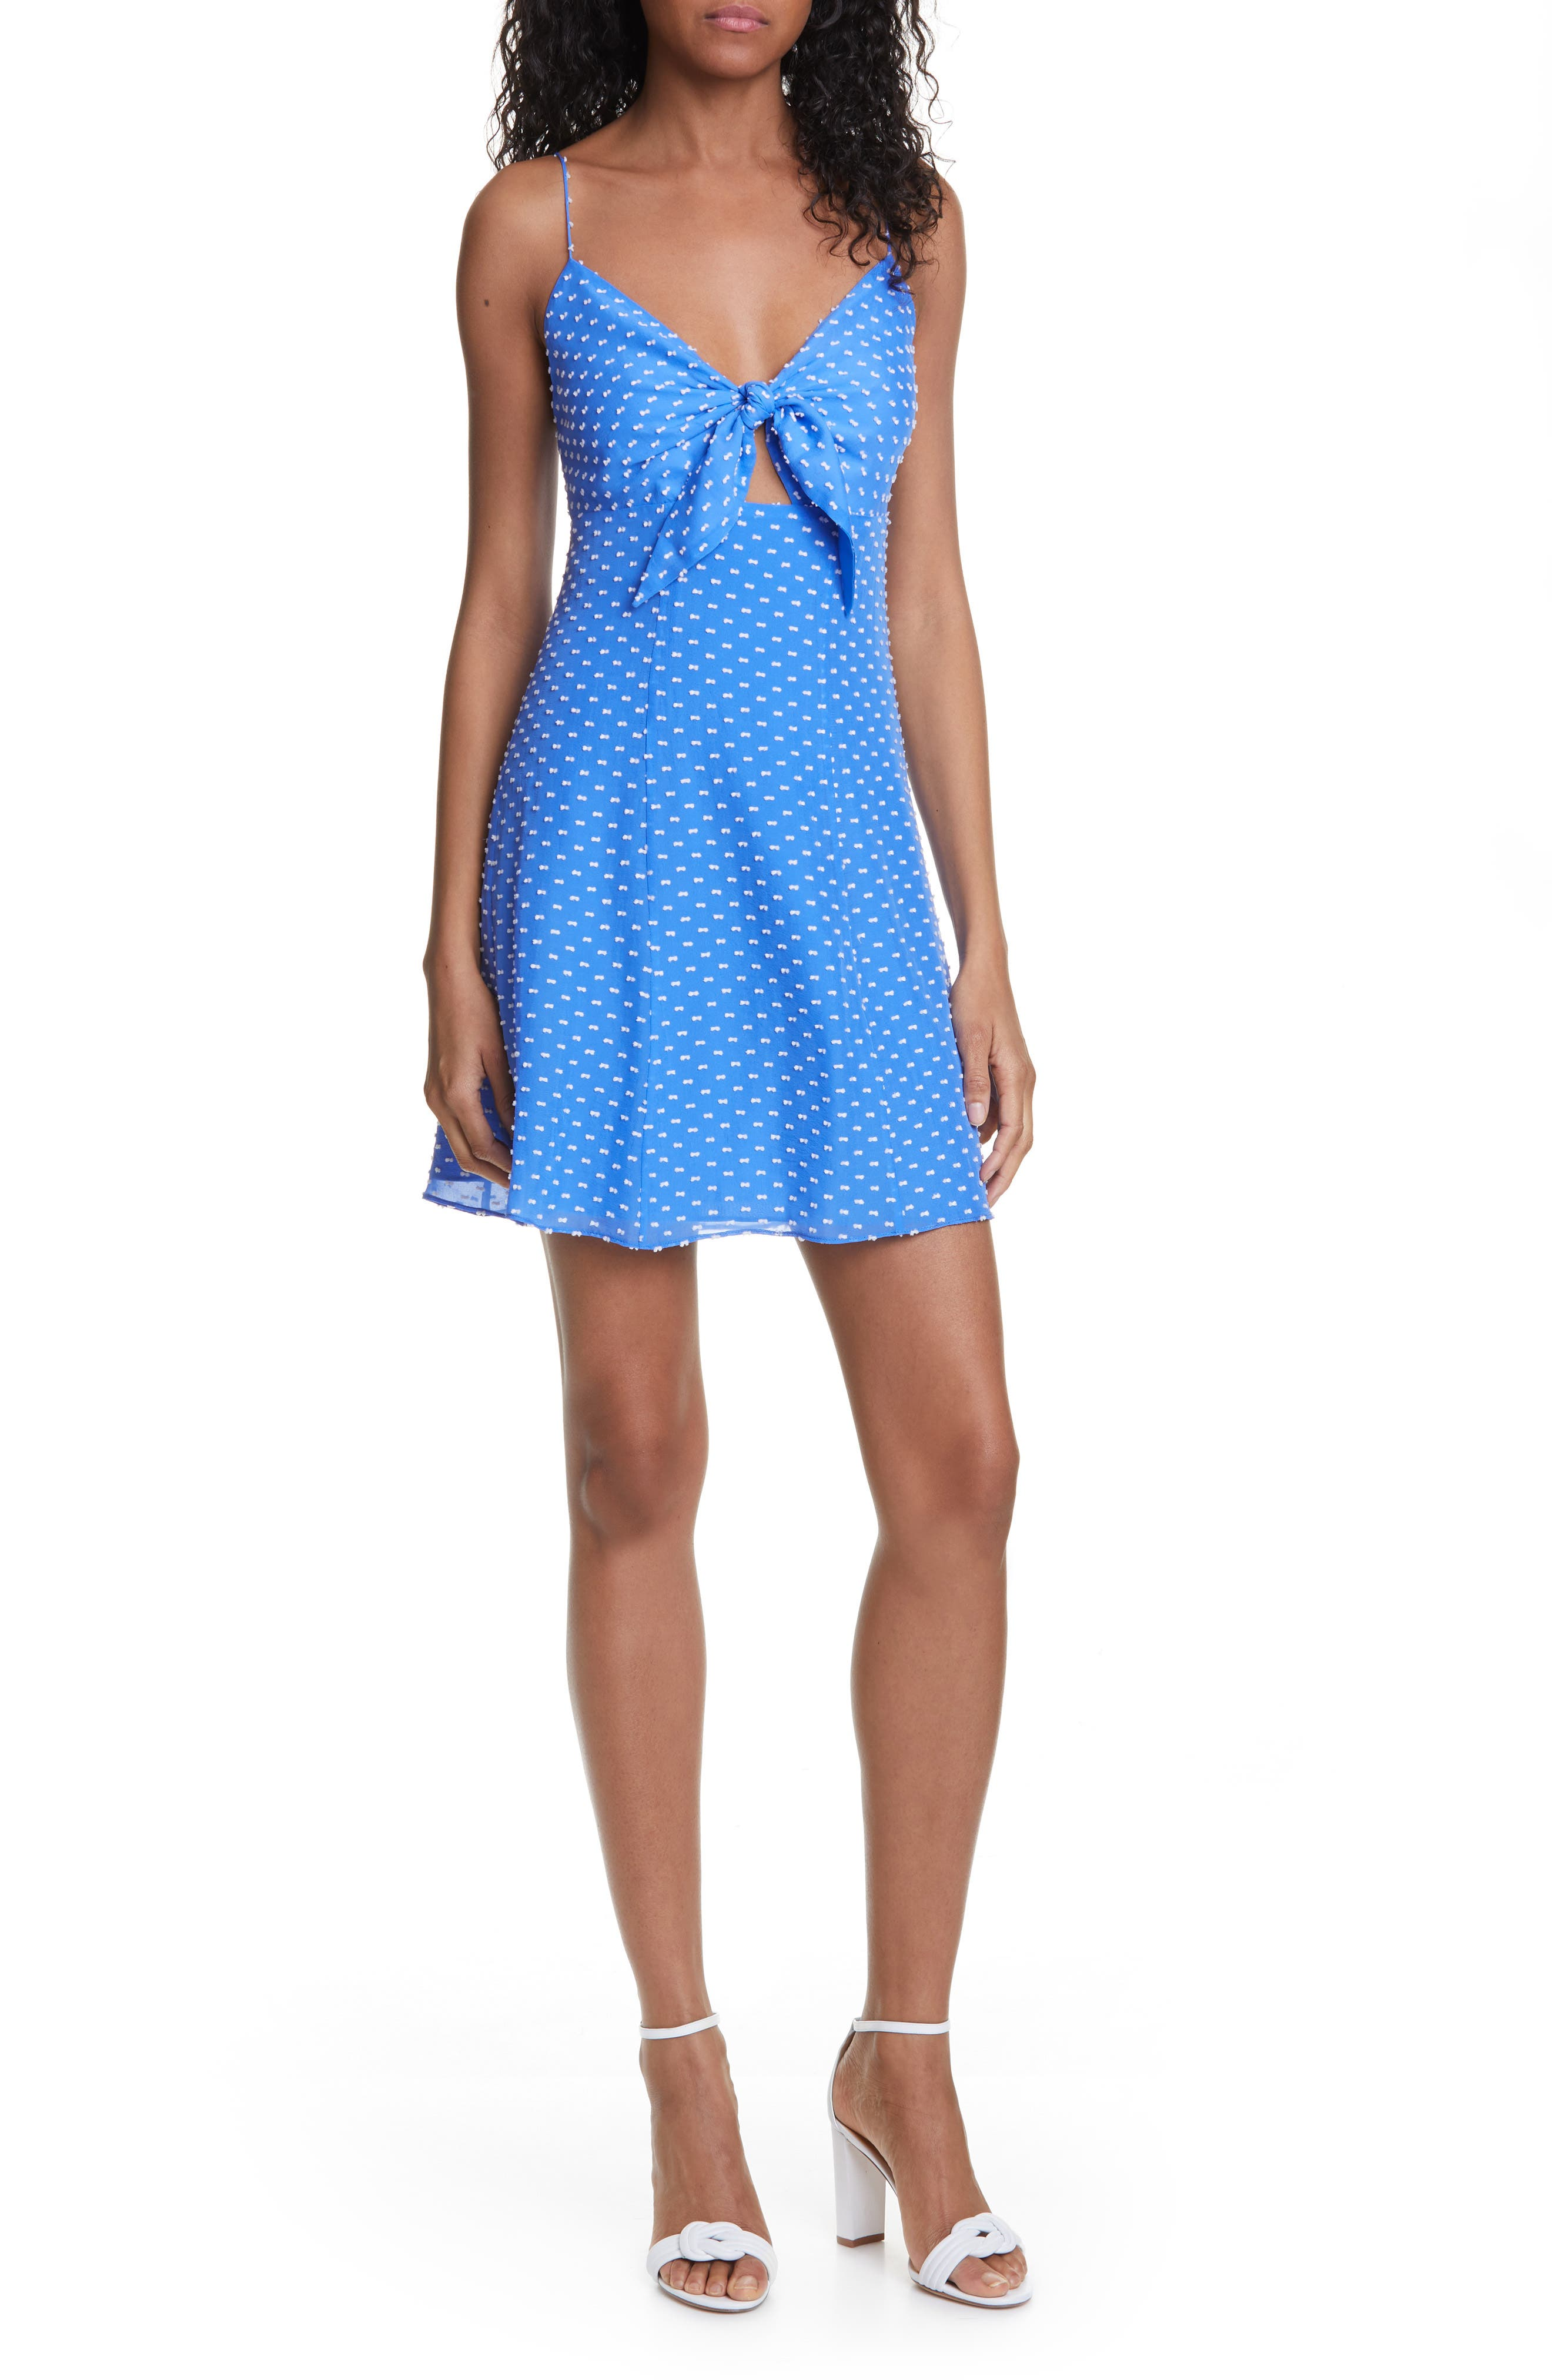 Alice + Olivia Roe Tie Front Cocktail Dress, Blue